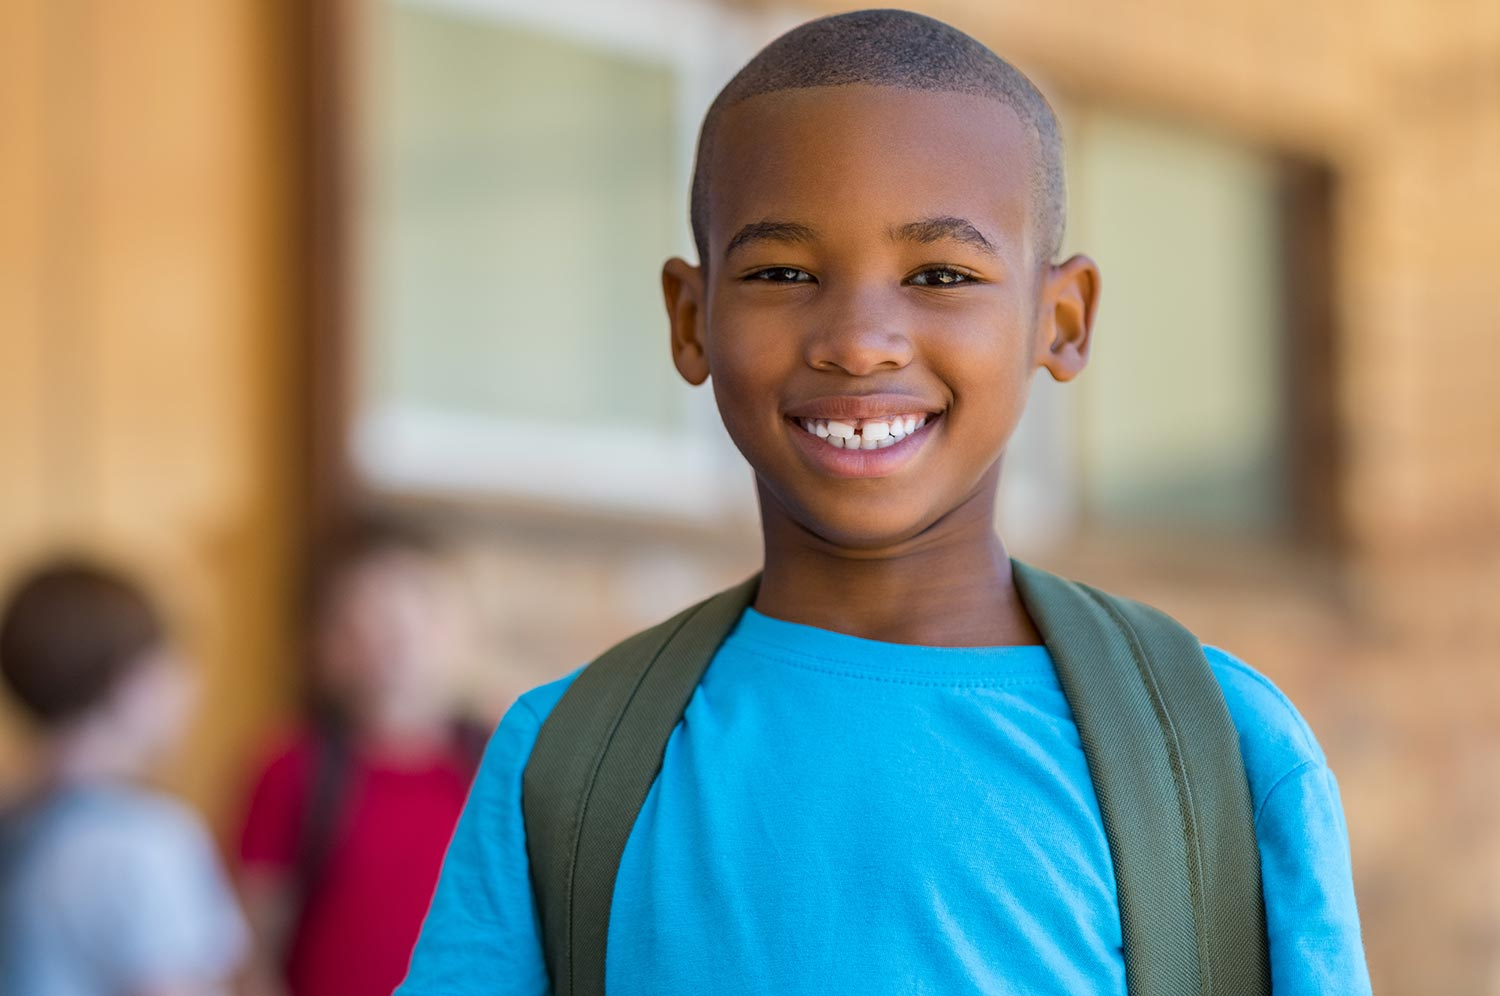 A small boy in a bright, blue shirt smiles widely to show off his white teeth.